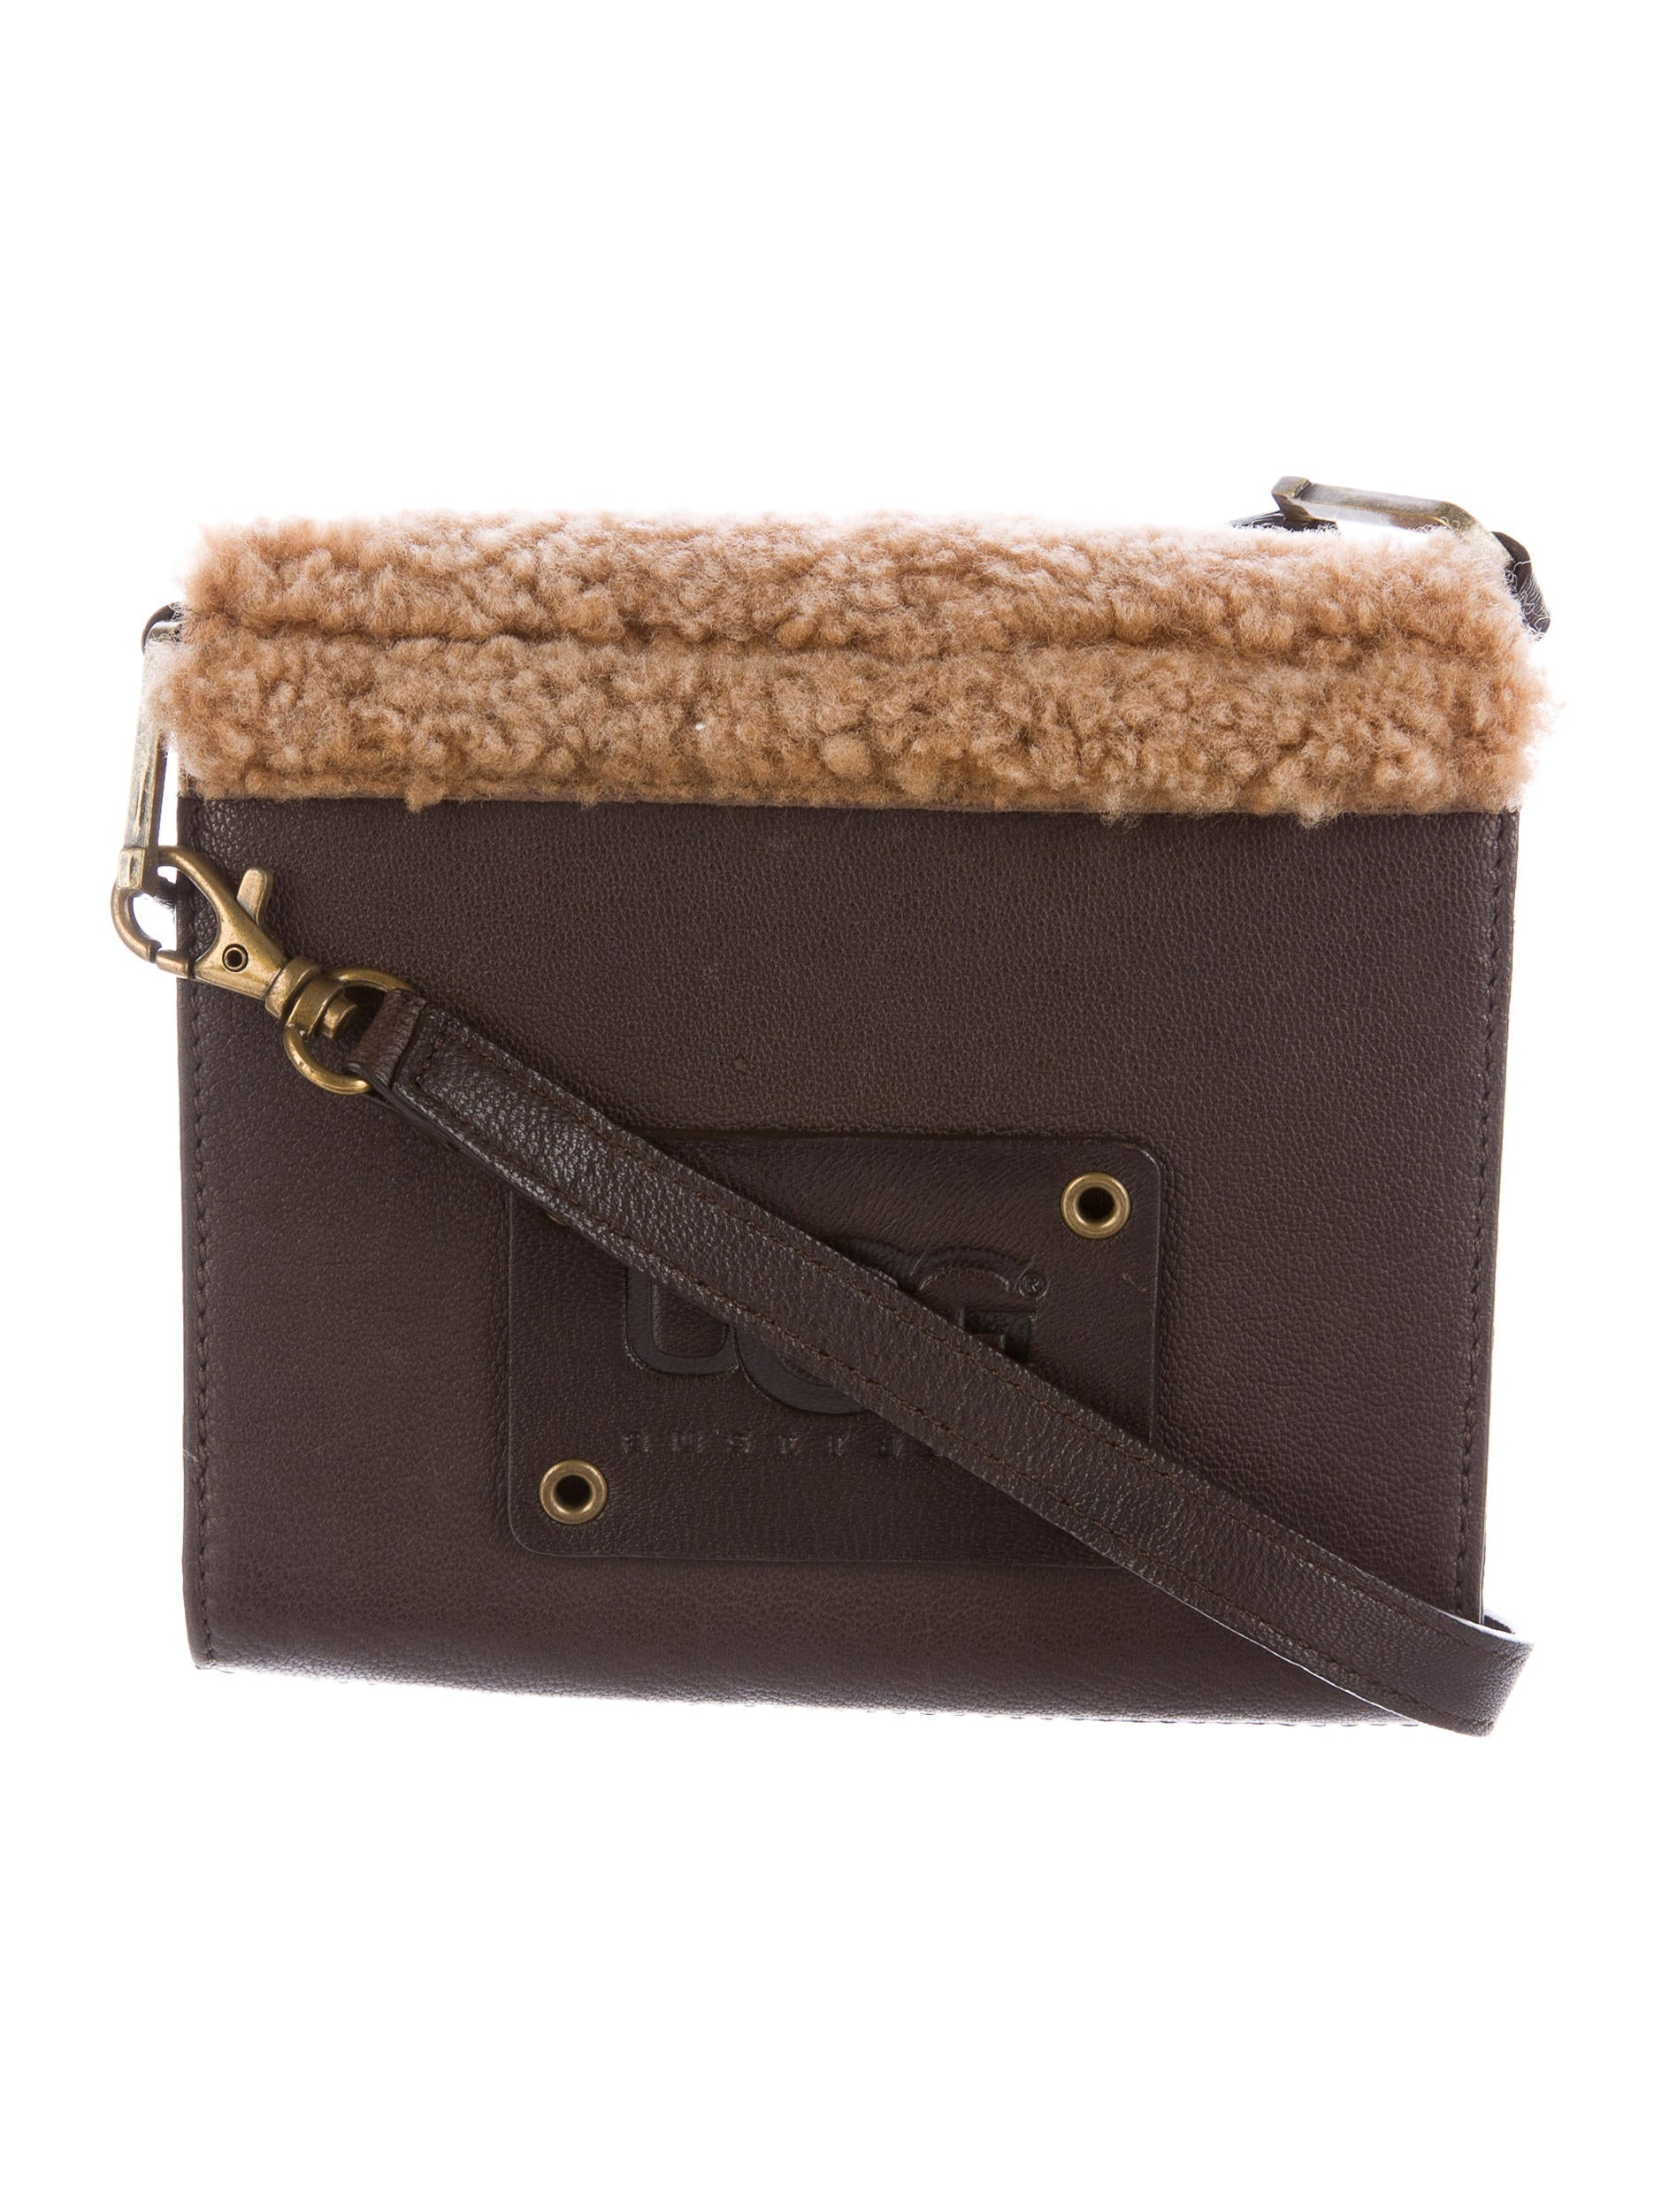 ugg bags and purses